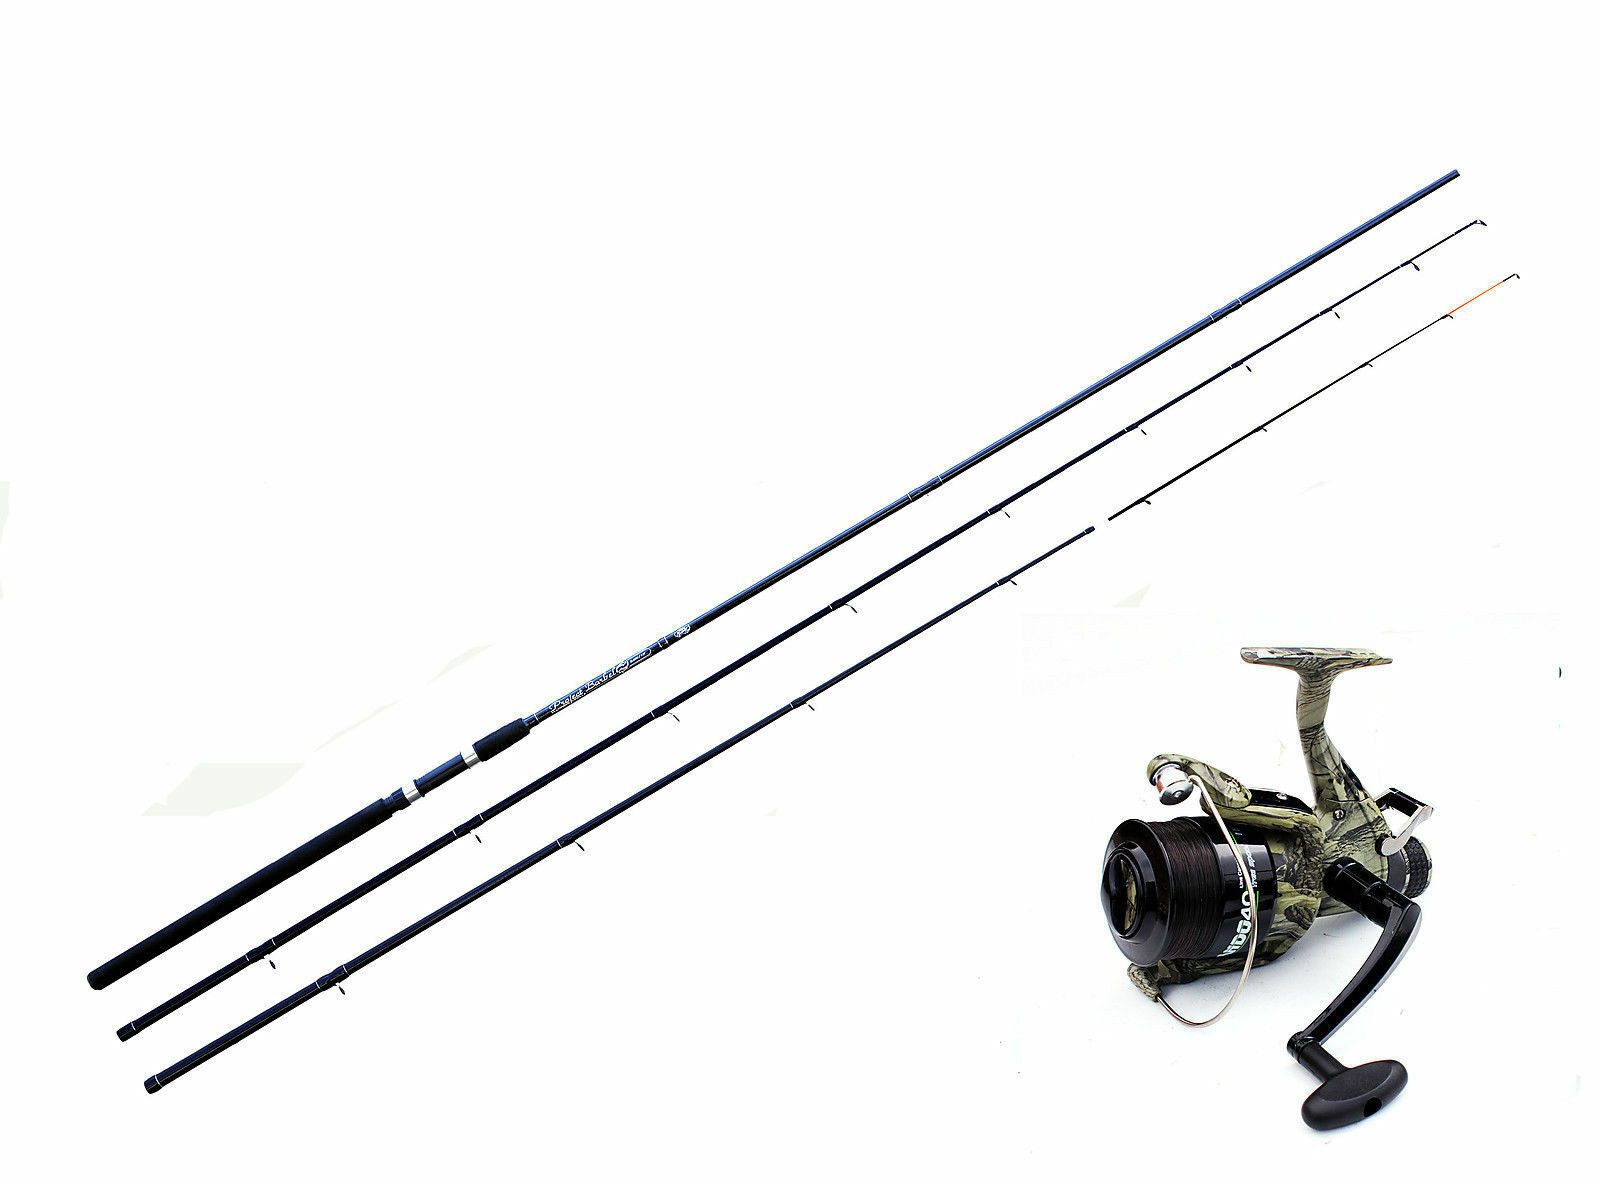 Project 12 Ft Barbel Rod Avon + Quiver Tips + Camo Freespool Reel 060 with Line